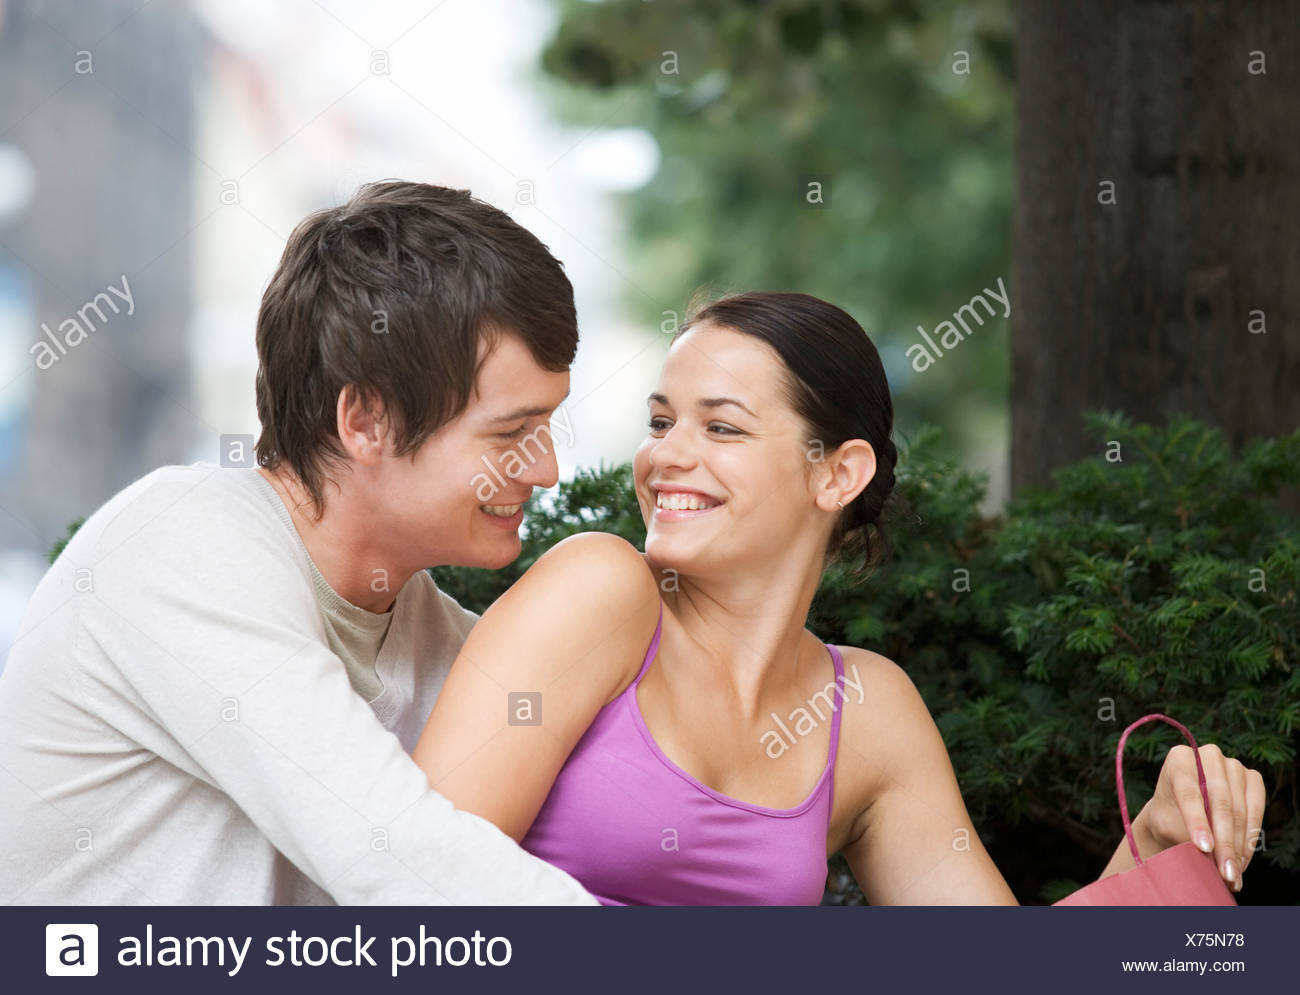 A young couple looking at their purchases - Stock Image